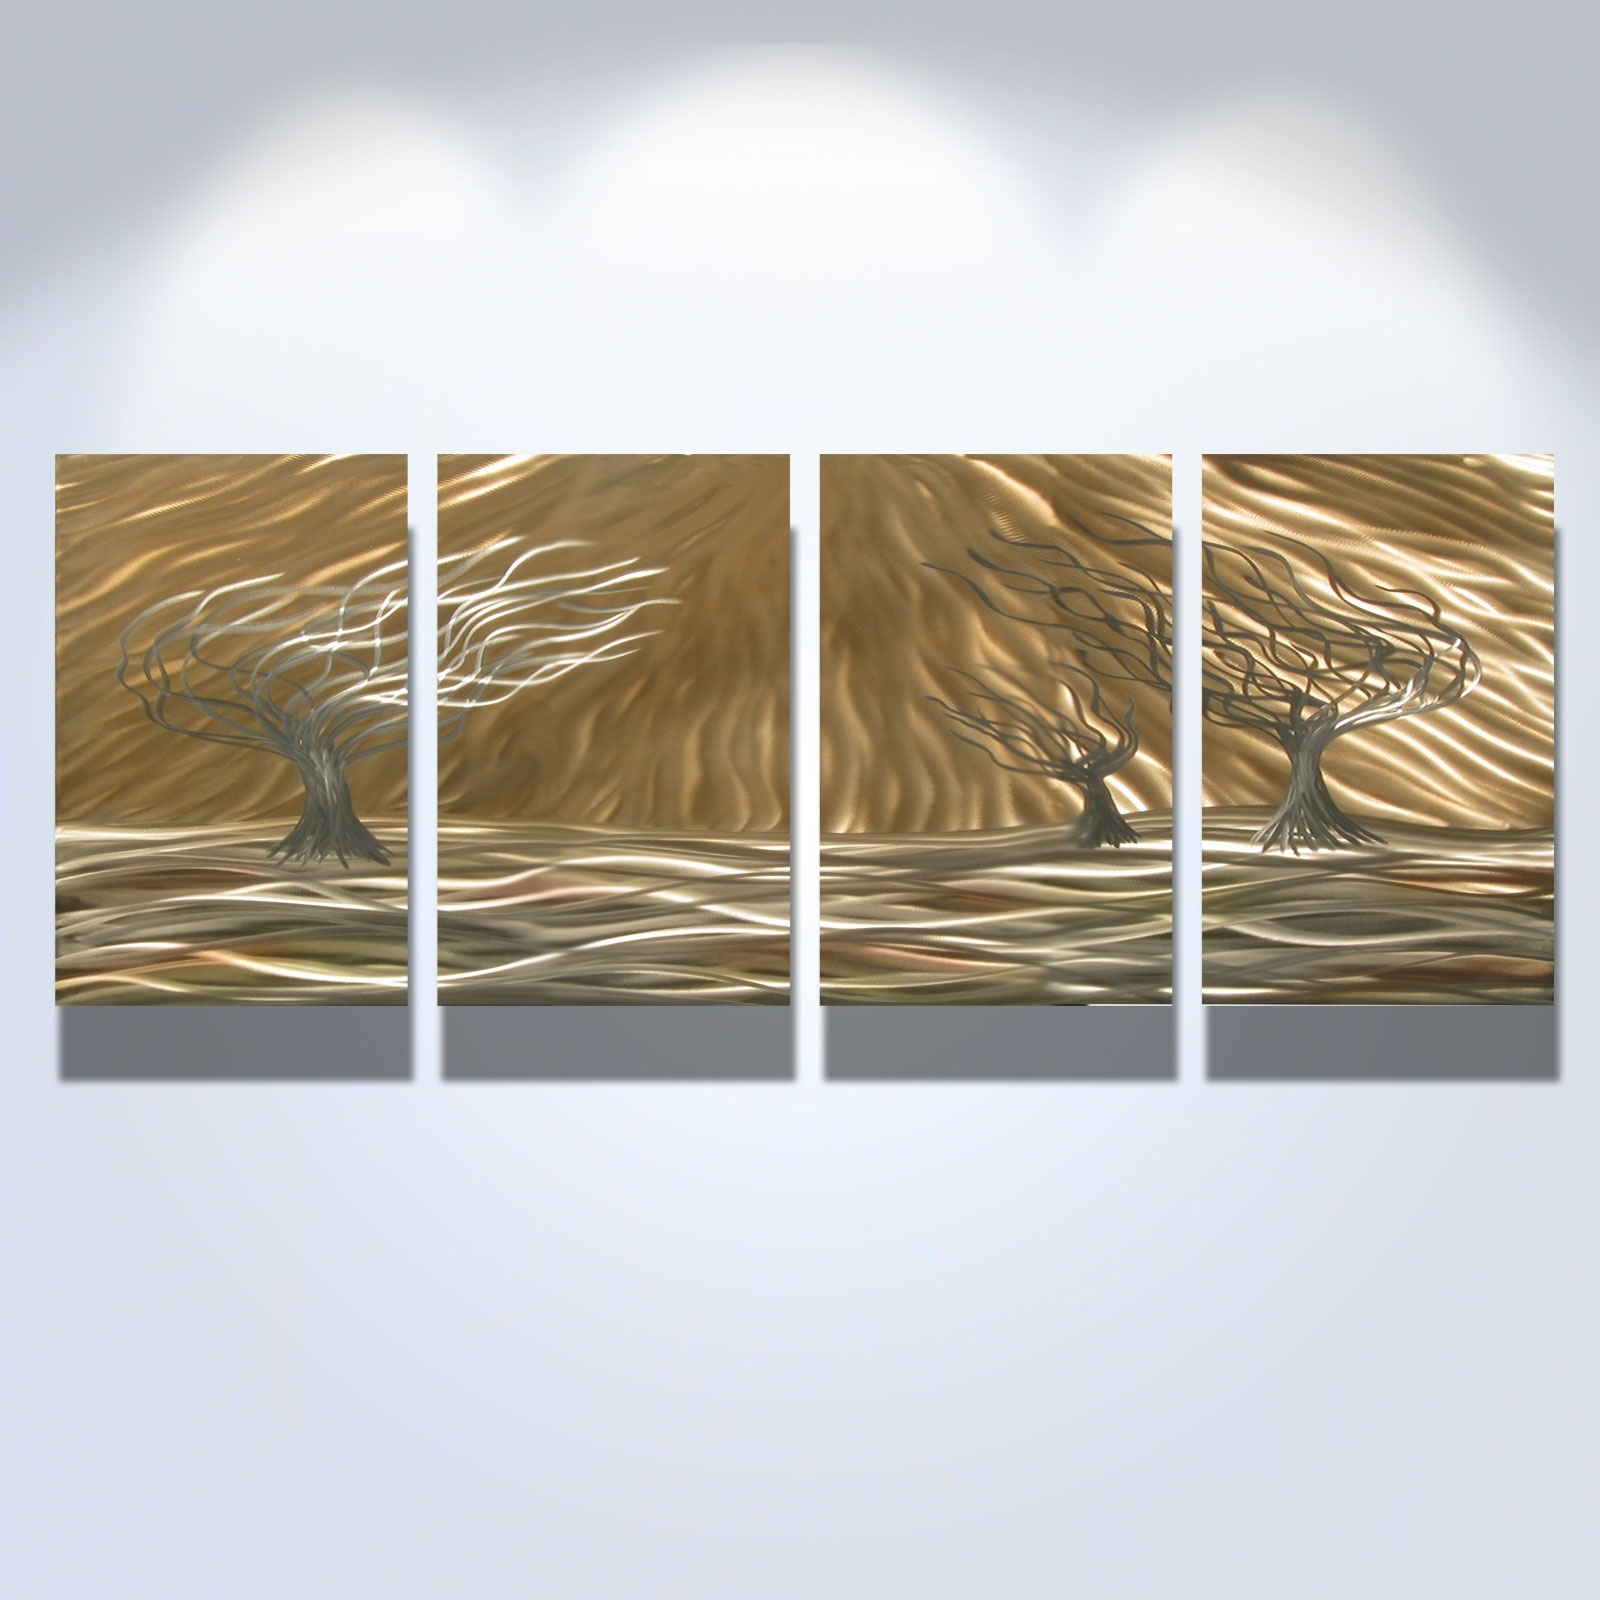 3 Trees 4 Panel - Abstract Metal Wall Art Contemporary Modern pertaining to Best and Newest Abstract Metal Wall Art Panels